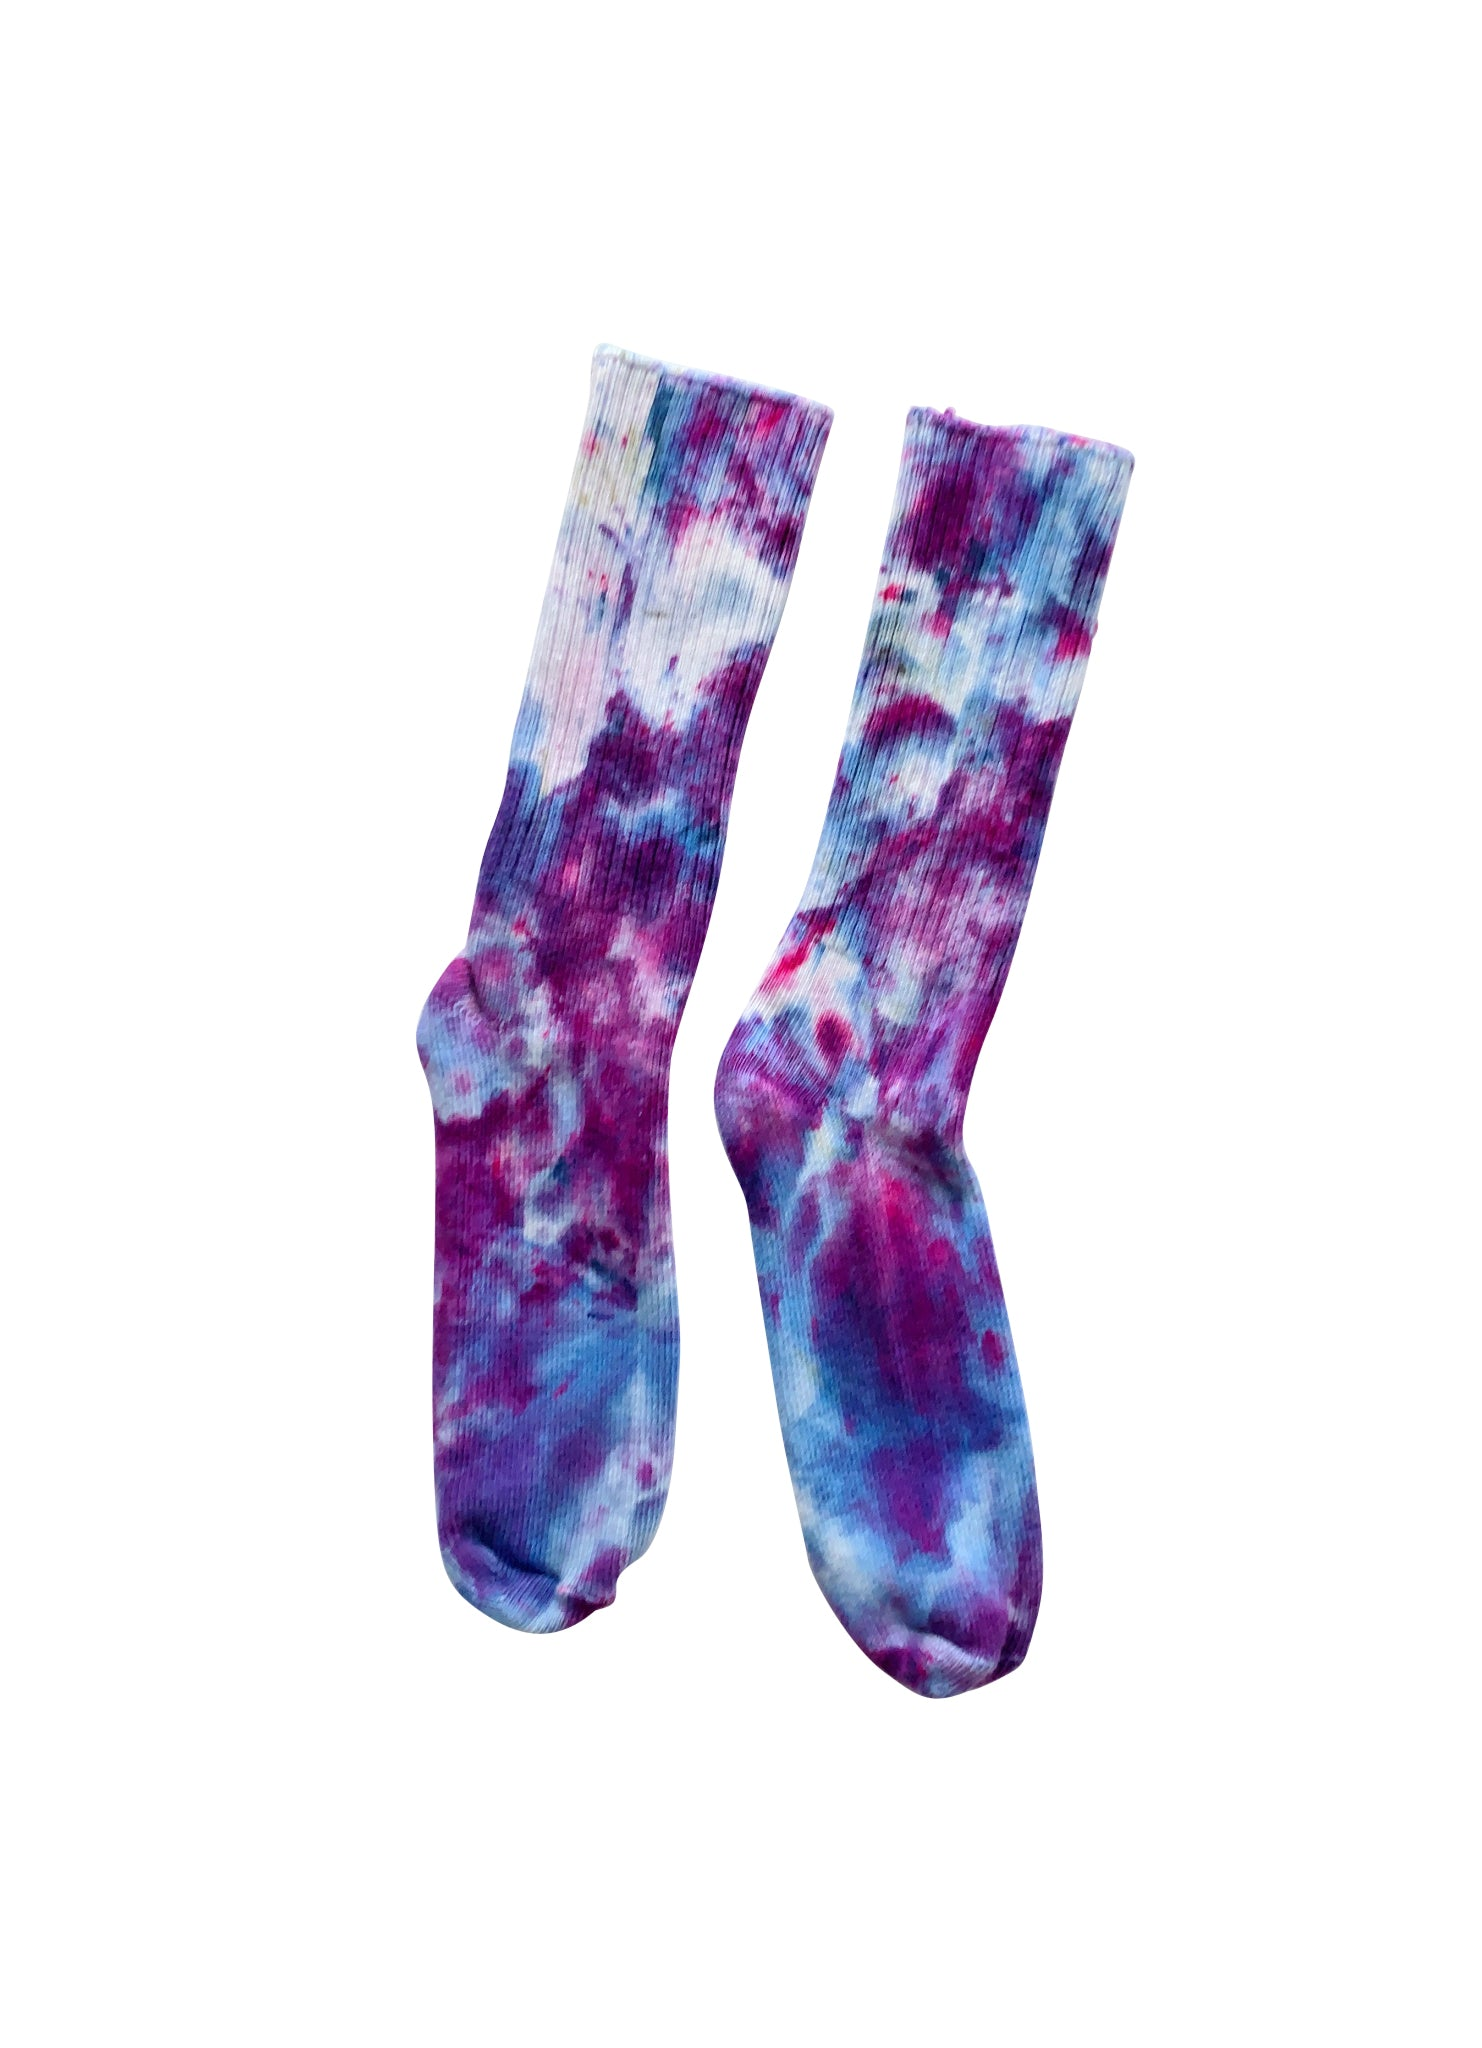 Bamboo Rayon Crew Socks- Perfect Purples - Crew Socks - Dyetology